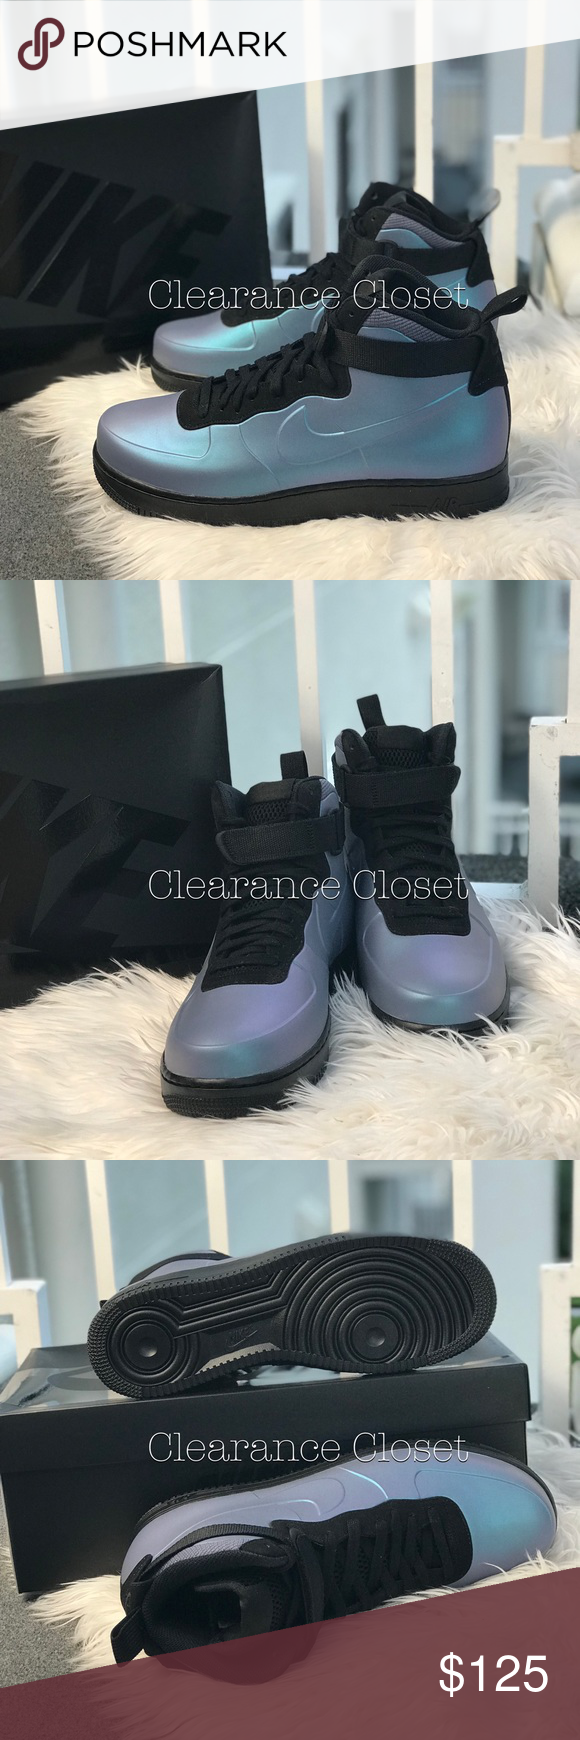 473e902846b02 NWT Nike Air Force 1 Foamposite CUP M AUTHENTIC Brand new with original  box. Price is firm. No trades. • Visible Nike Air unit provides lightweight  ...